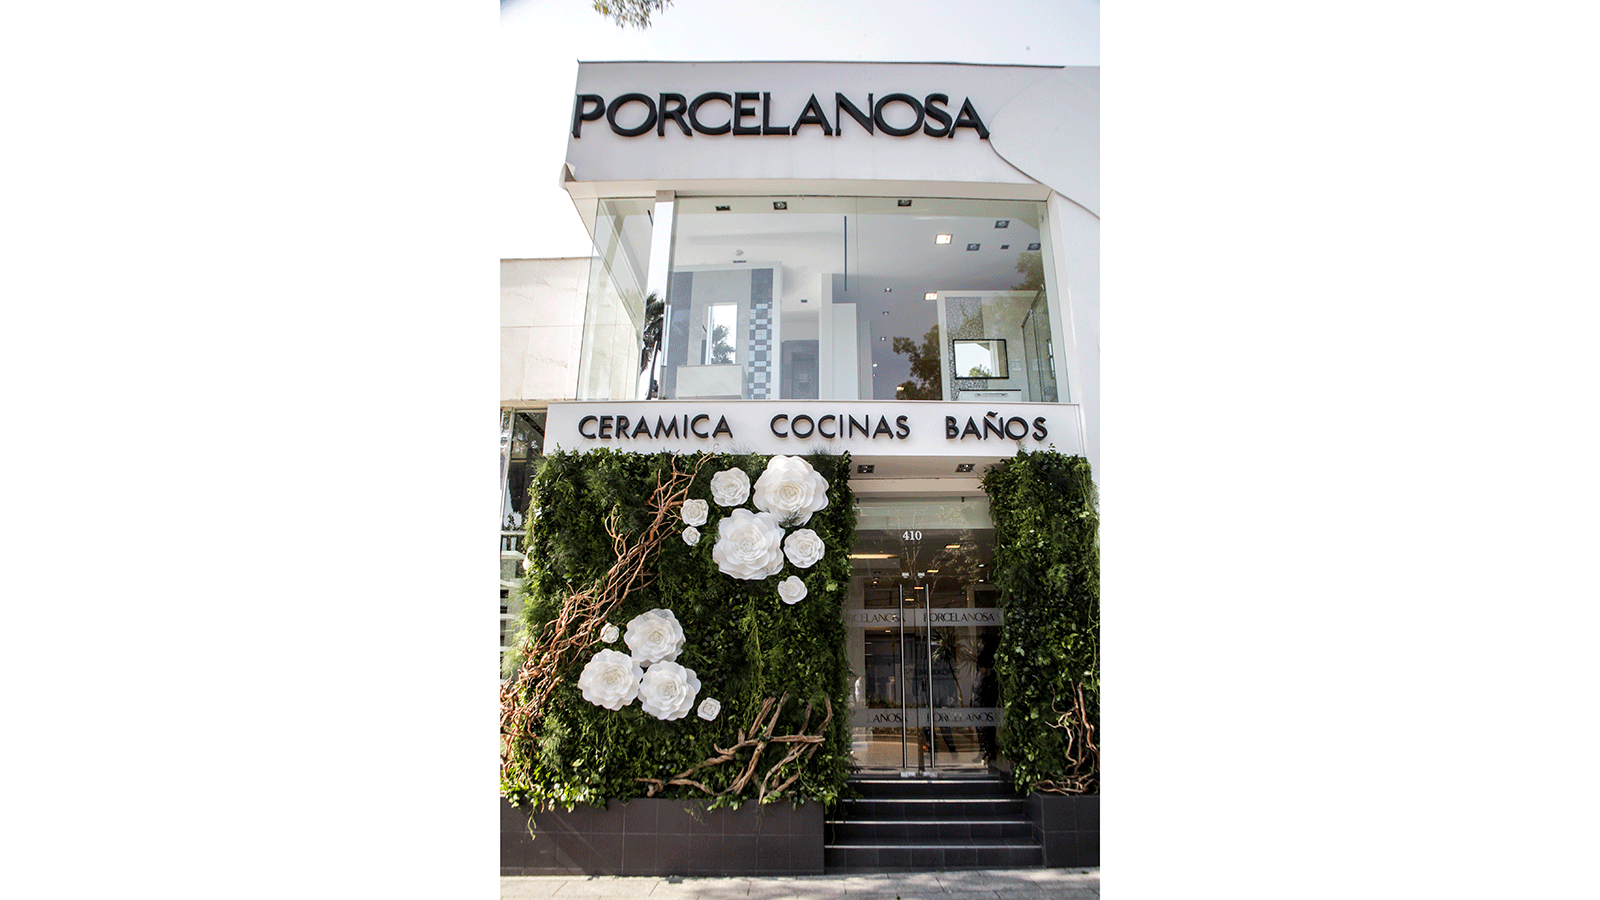 Le groupe PORCELANOSA couvre de roses blanches son showroom mexicain